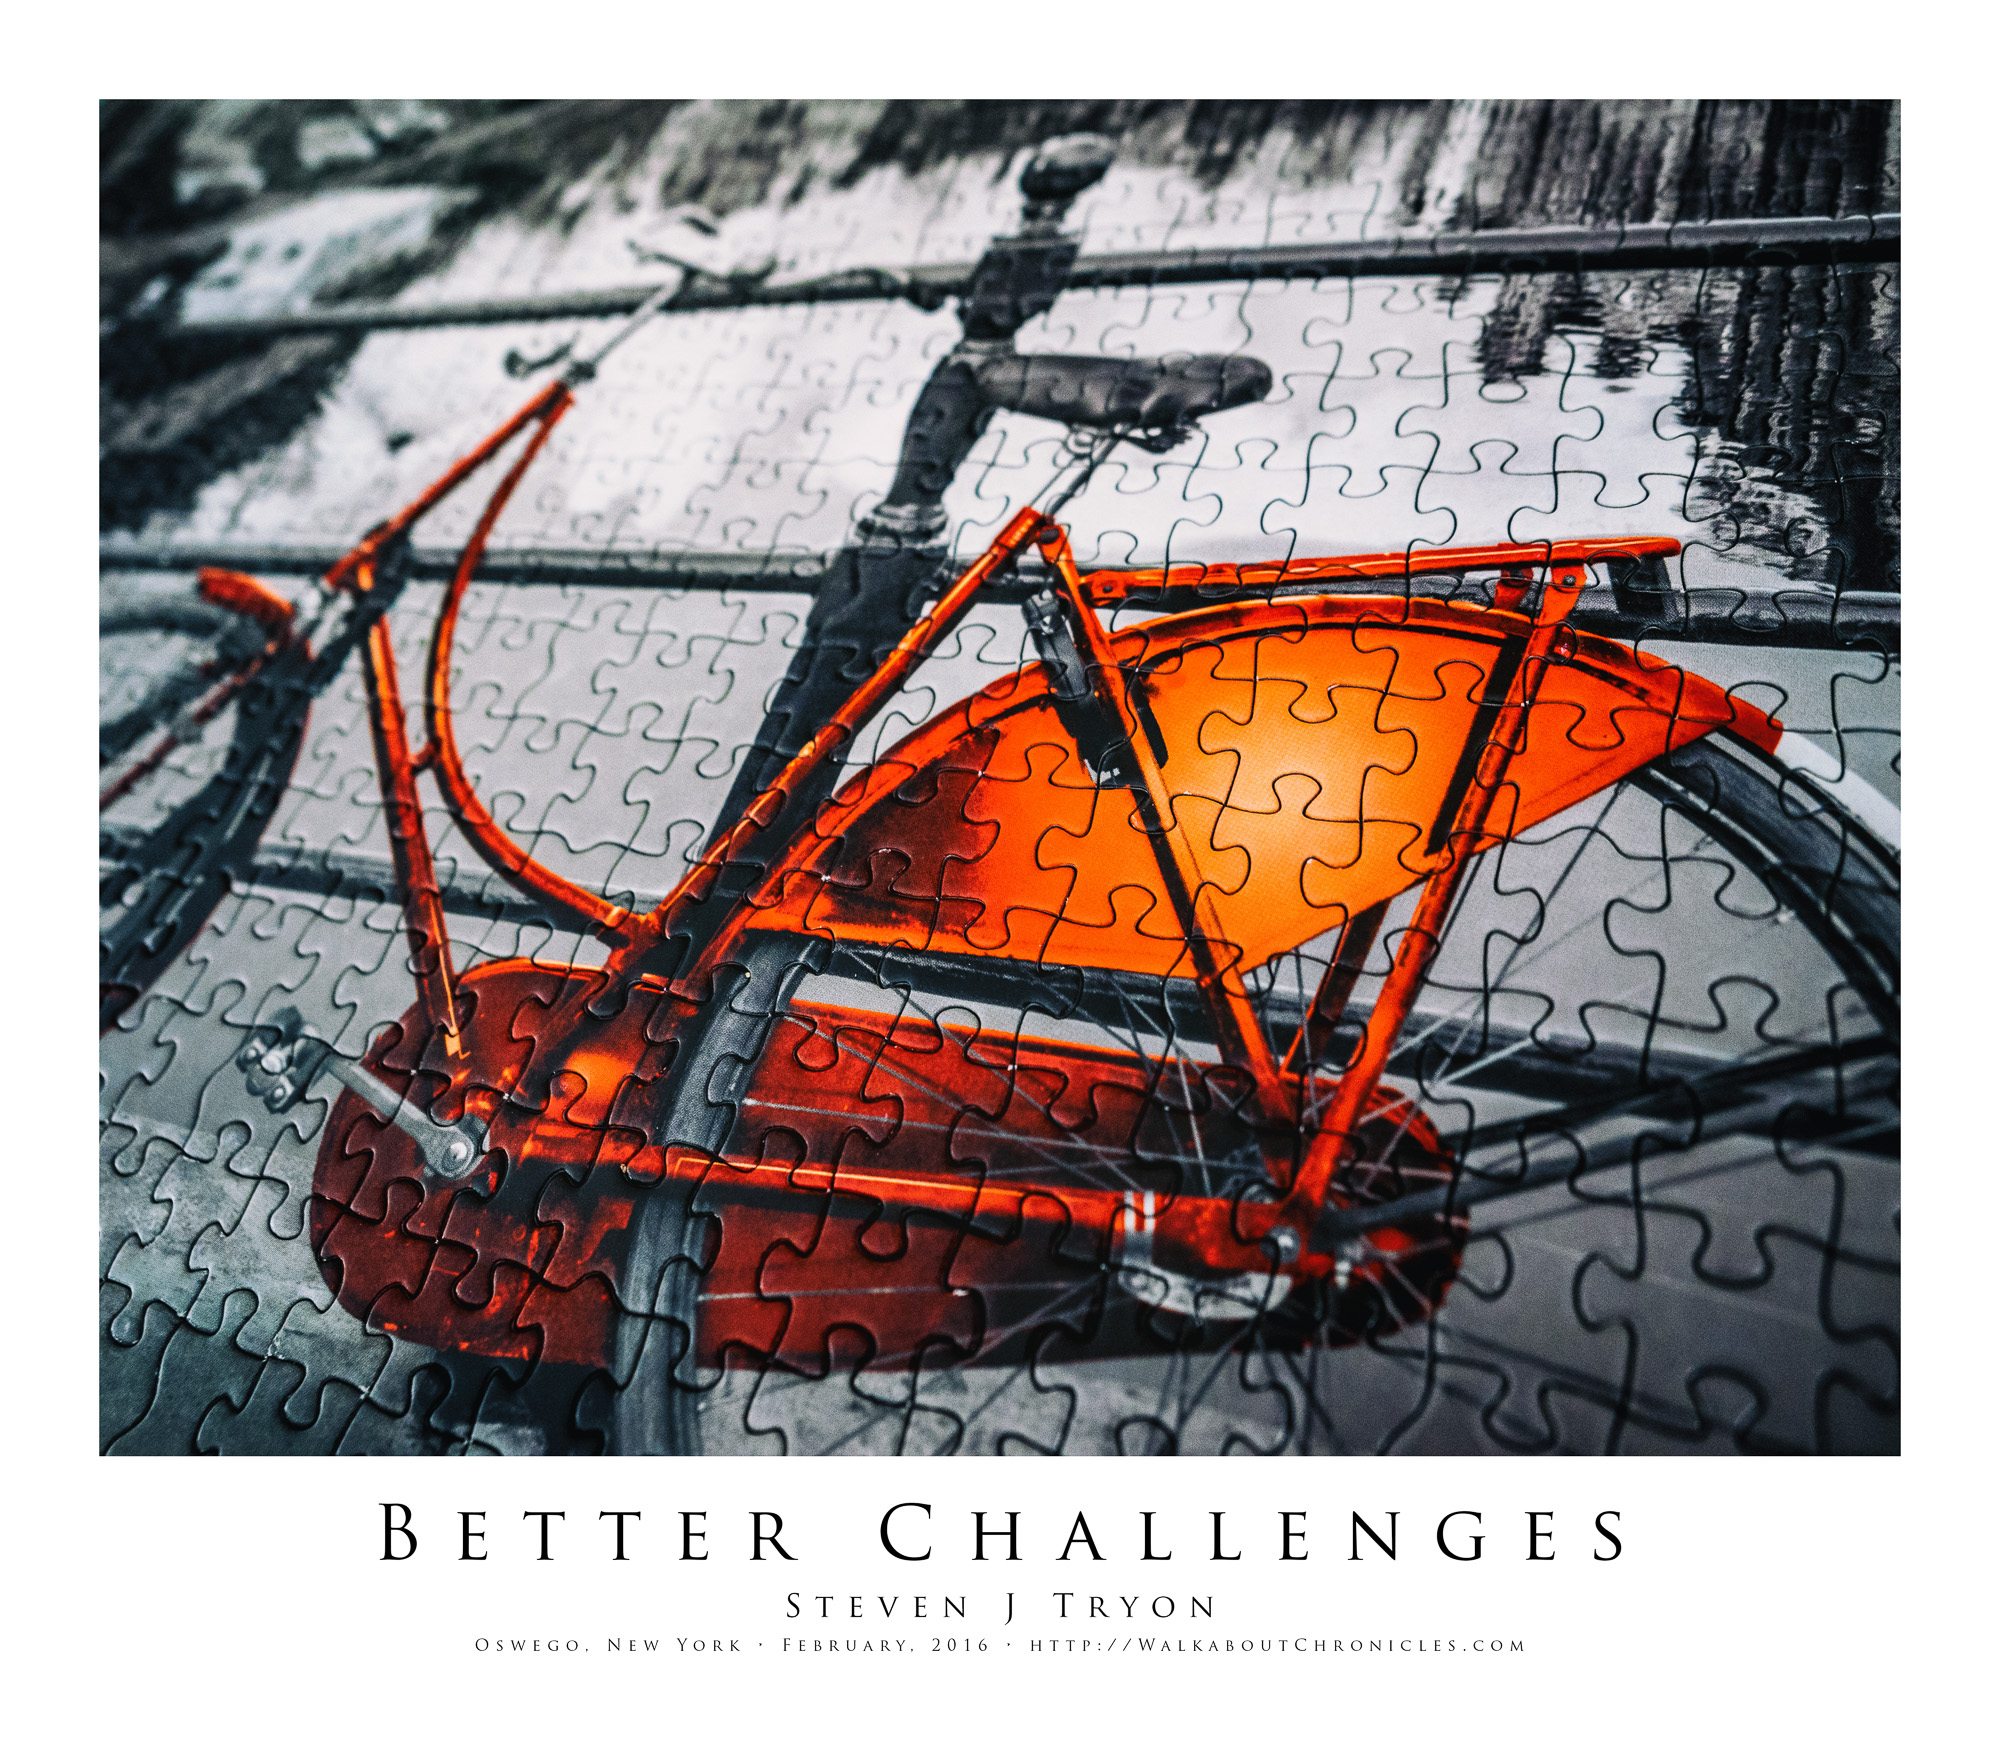 Better Challenges